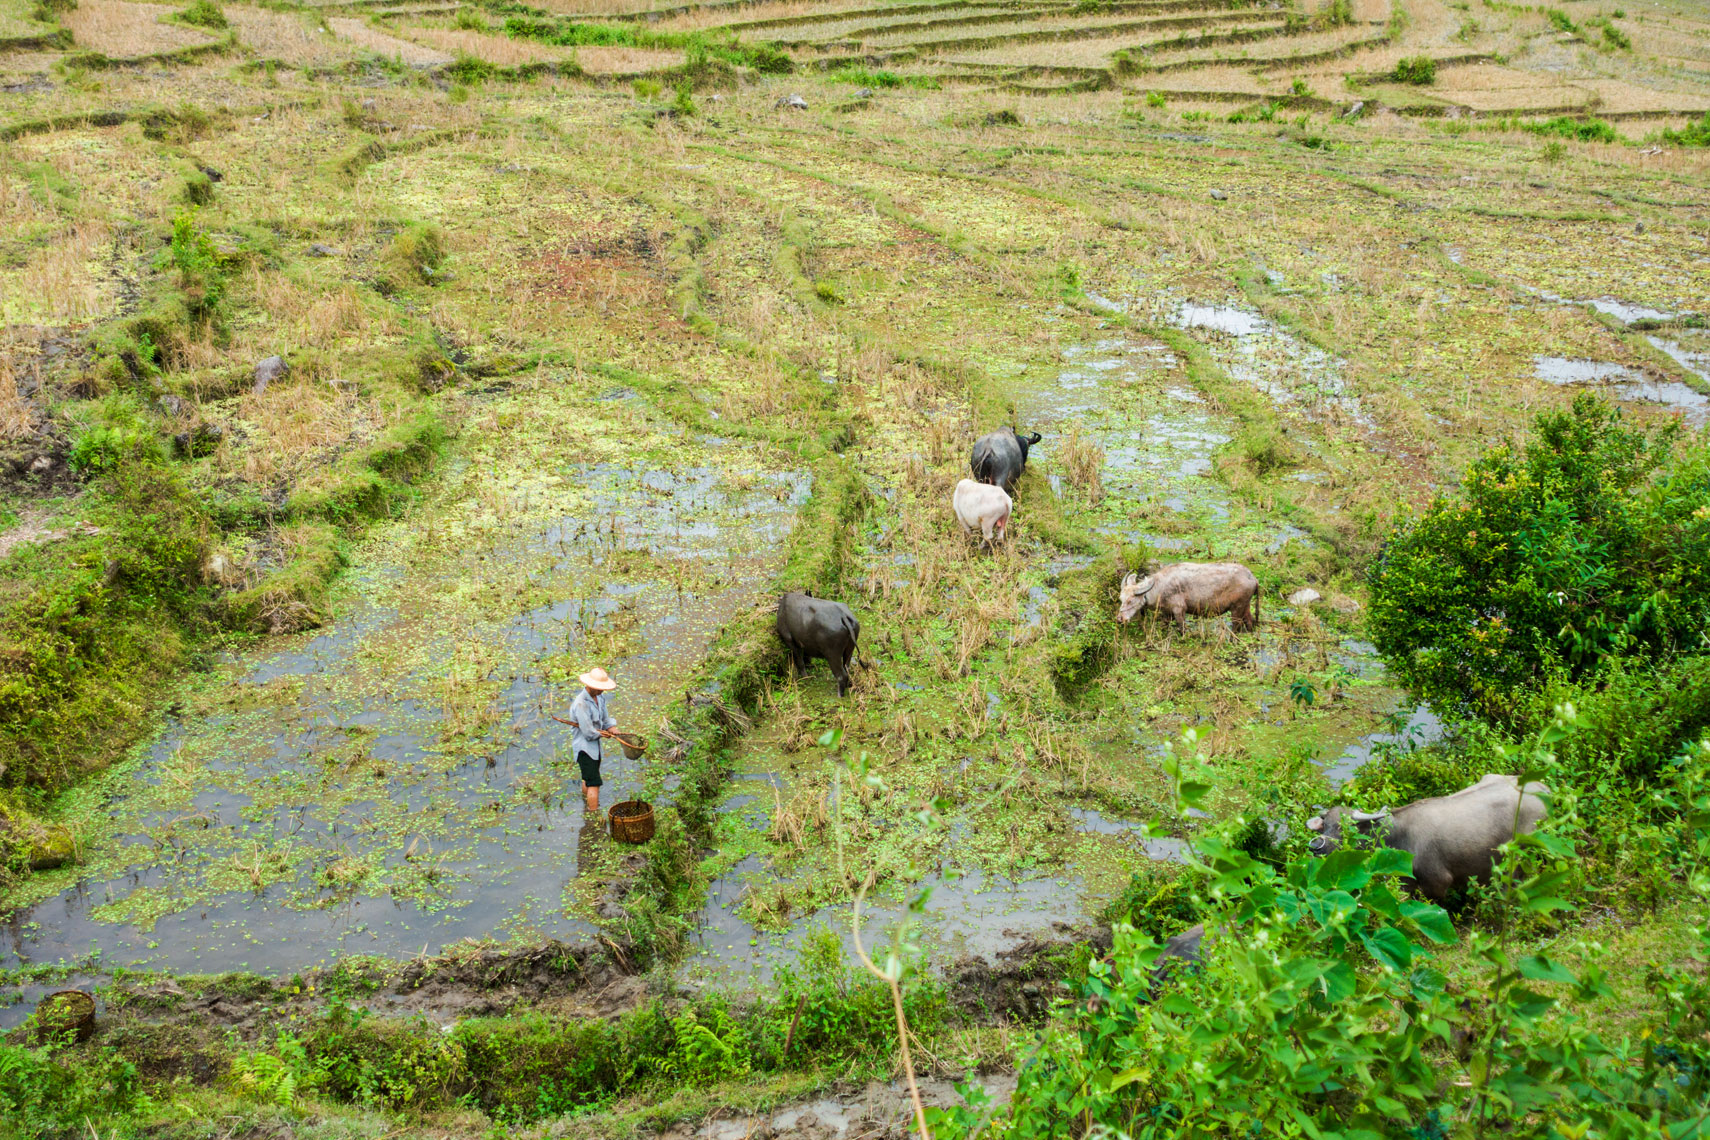 rice-farm-and-oxen-ha-giang